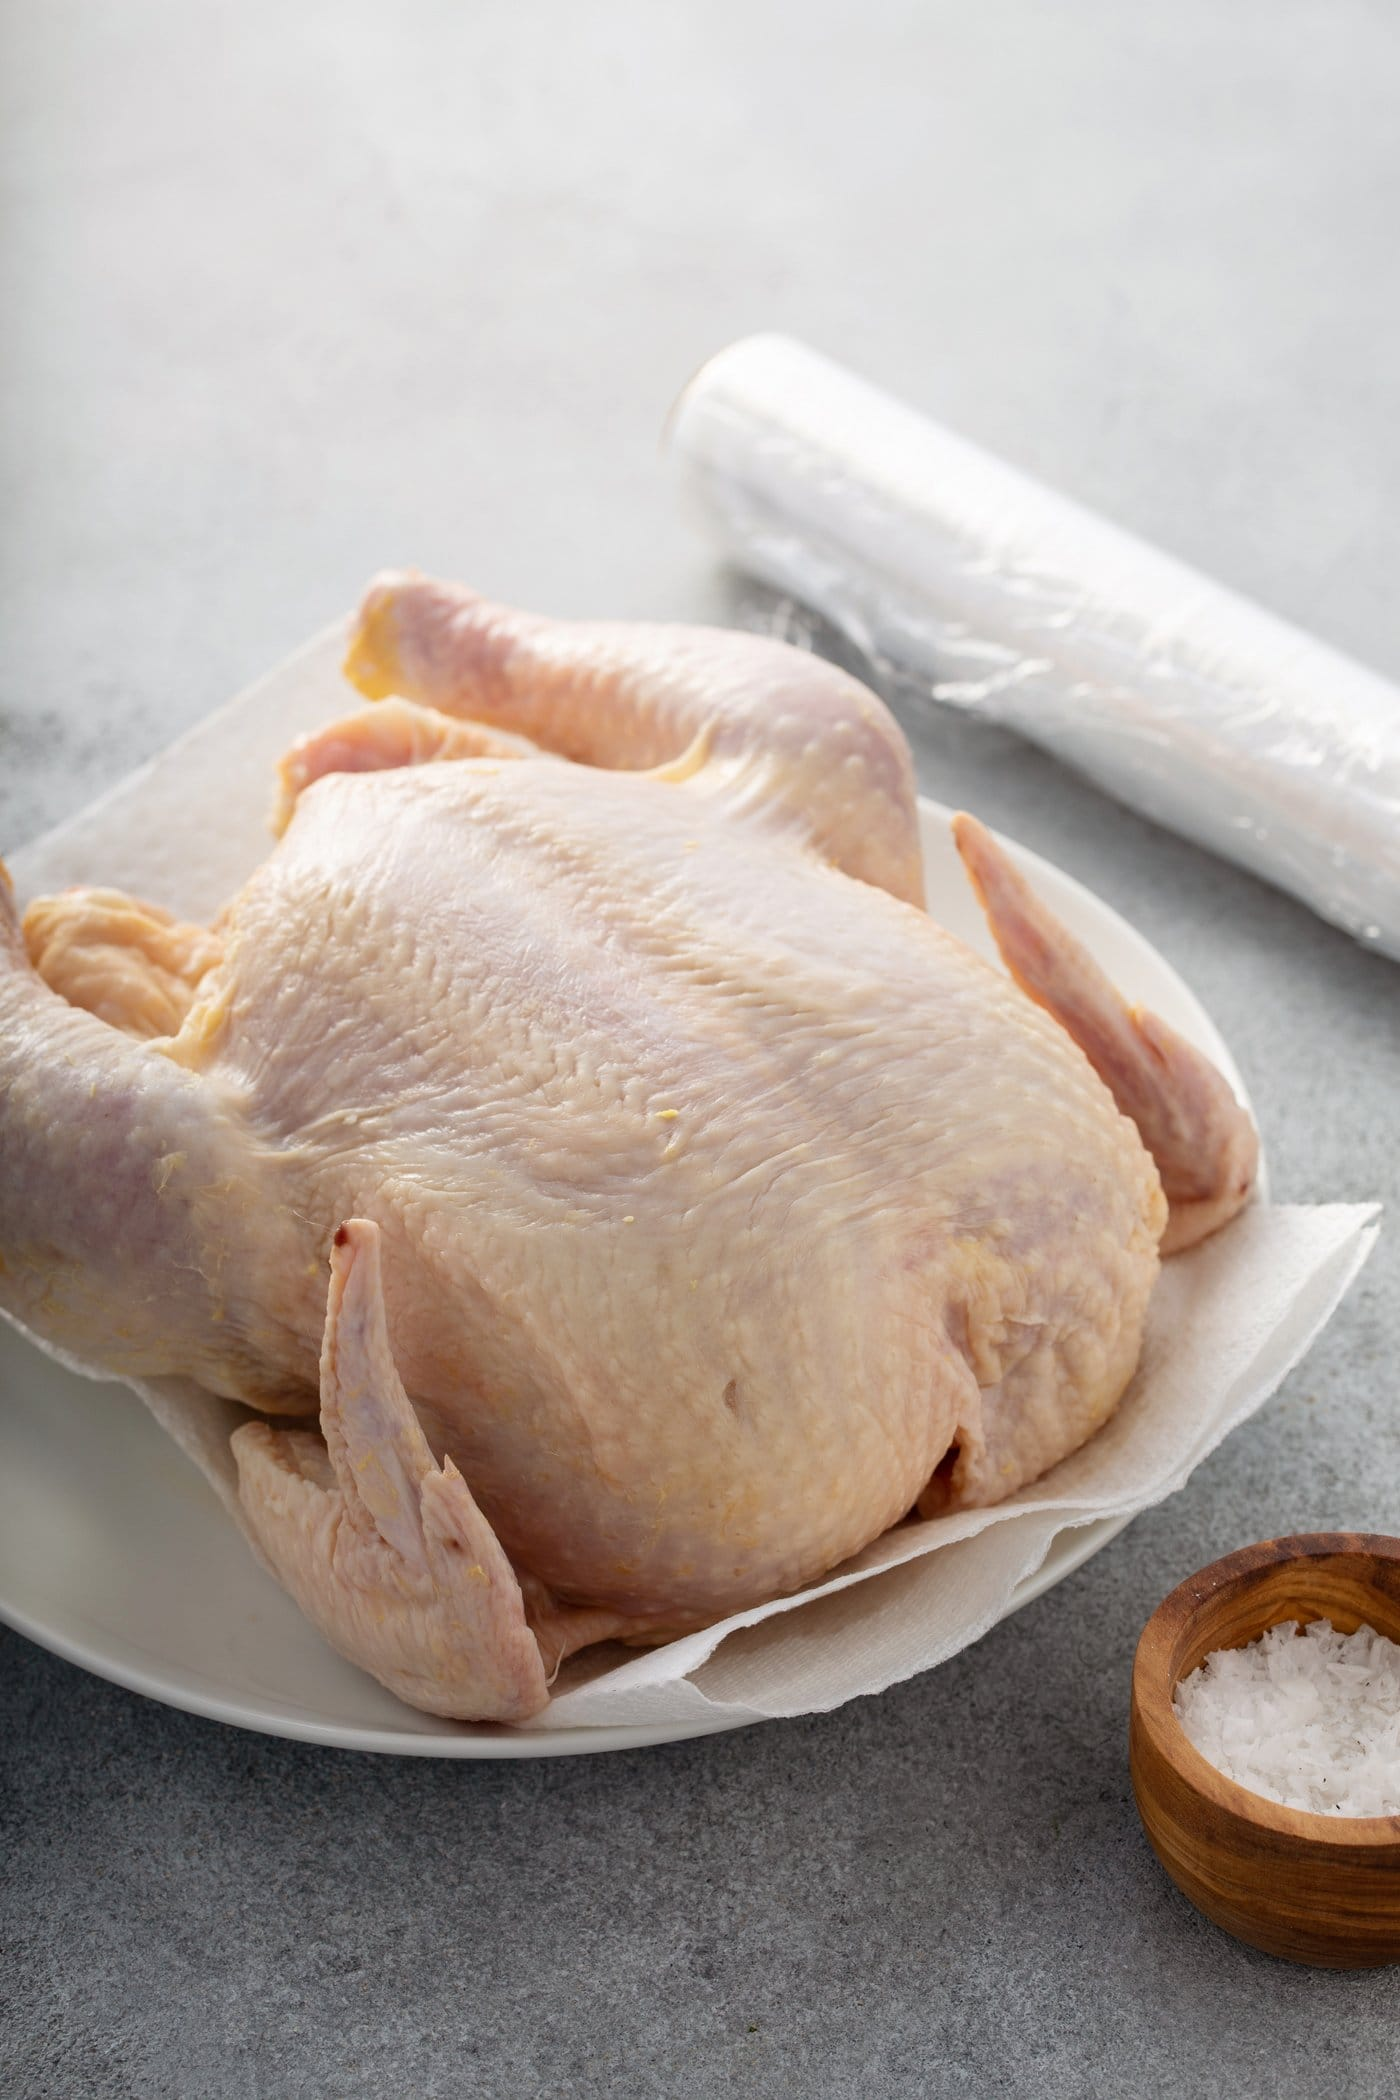 A whole chicken that hasn't been cooked. It is resting on a piece of parchment paper and a roll of parchment paper is next to it. There is a small wooden bowl of salt in front of the chicken.